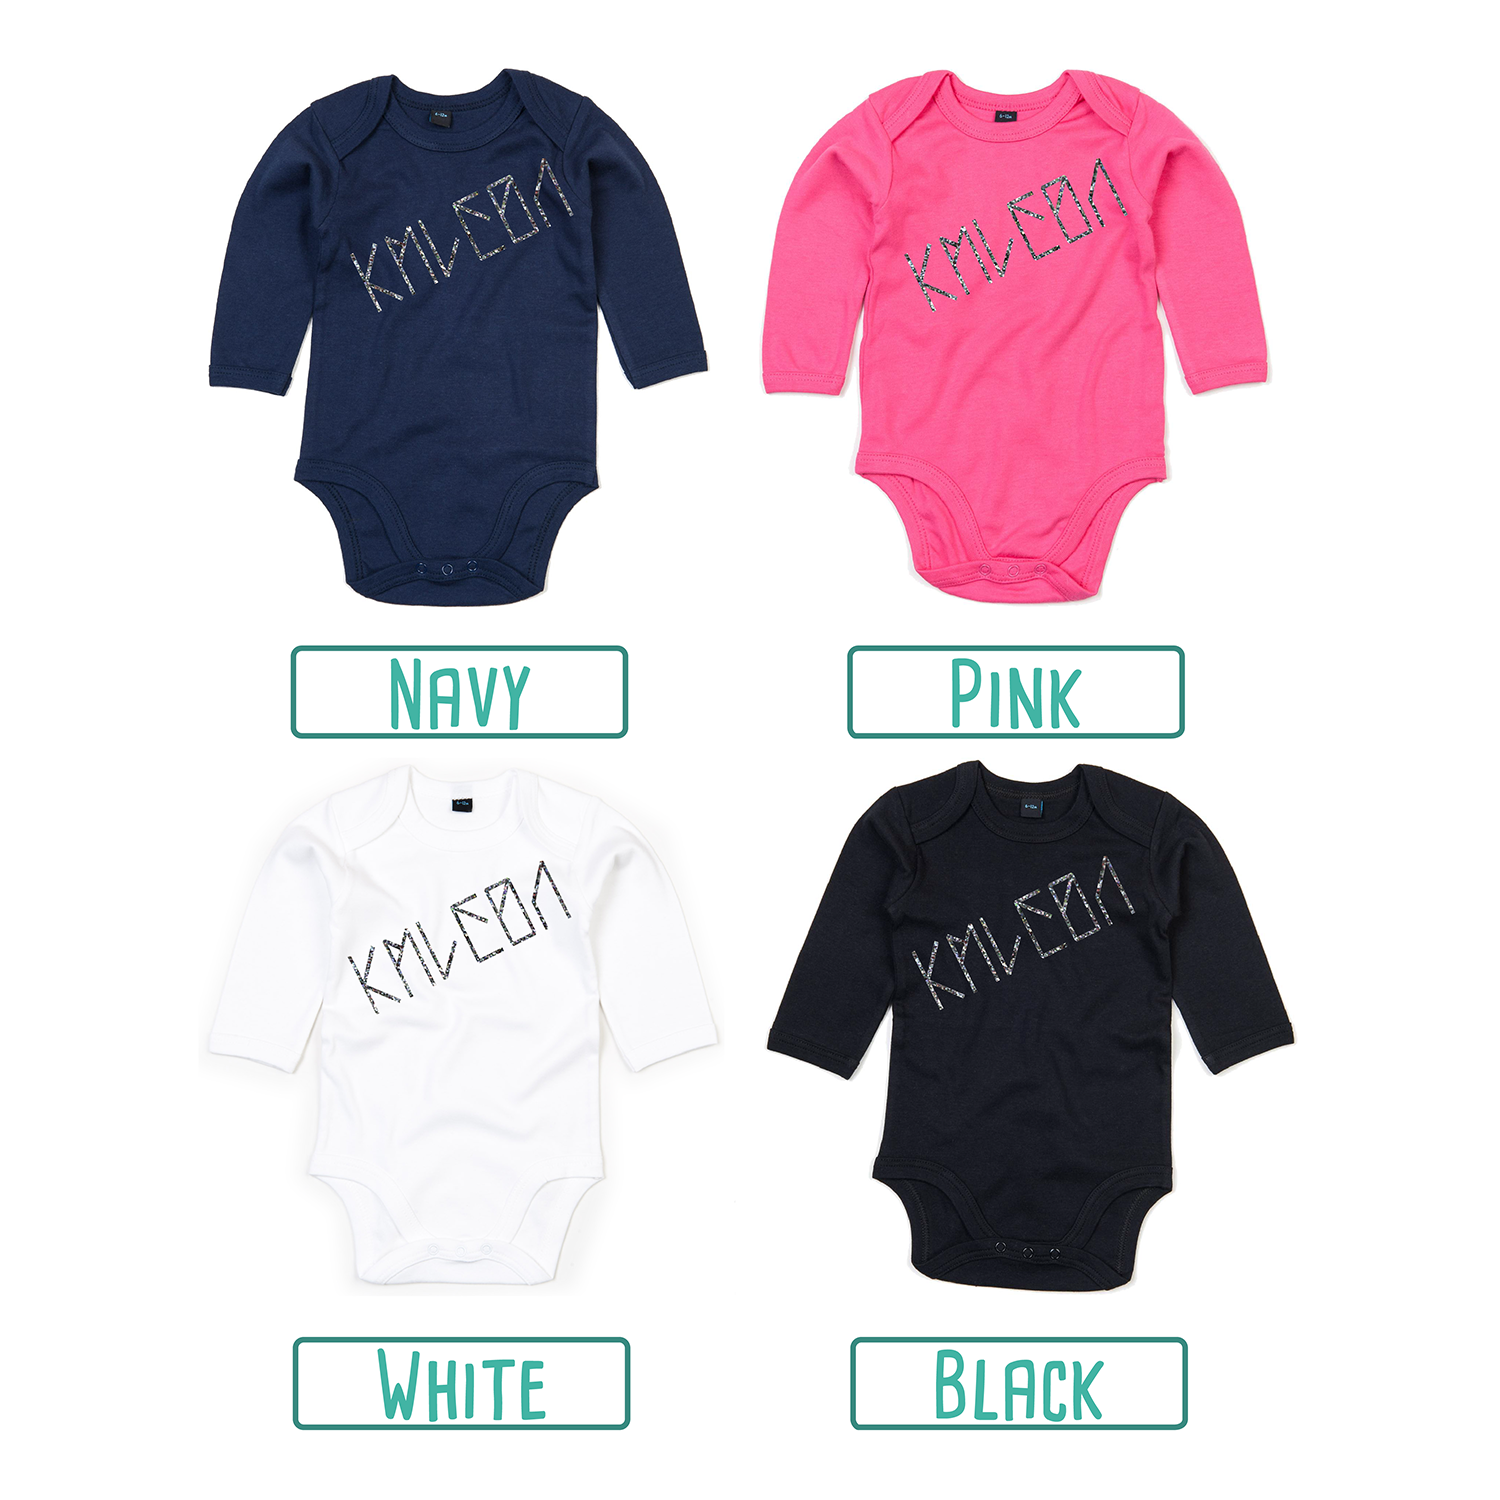 Colour options for baby or toddler bodysuits with long sleeves by KMLeon.